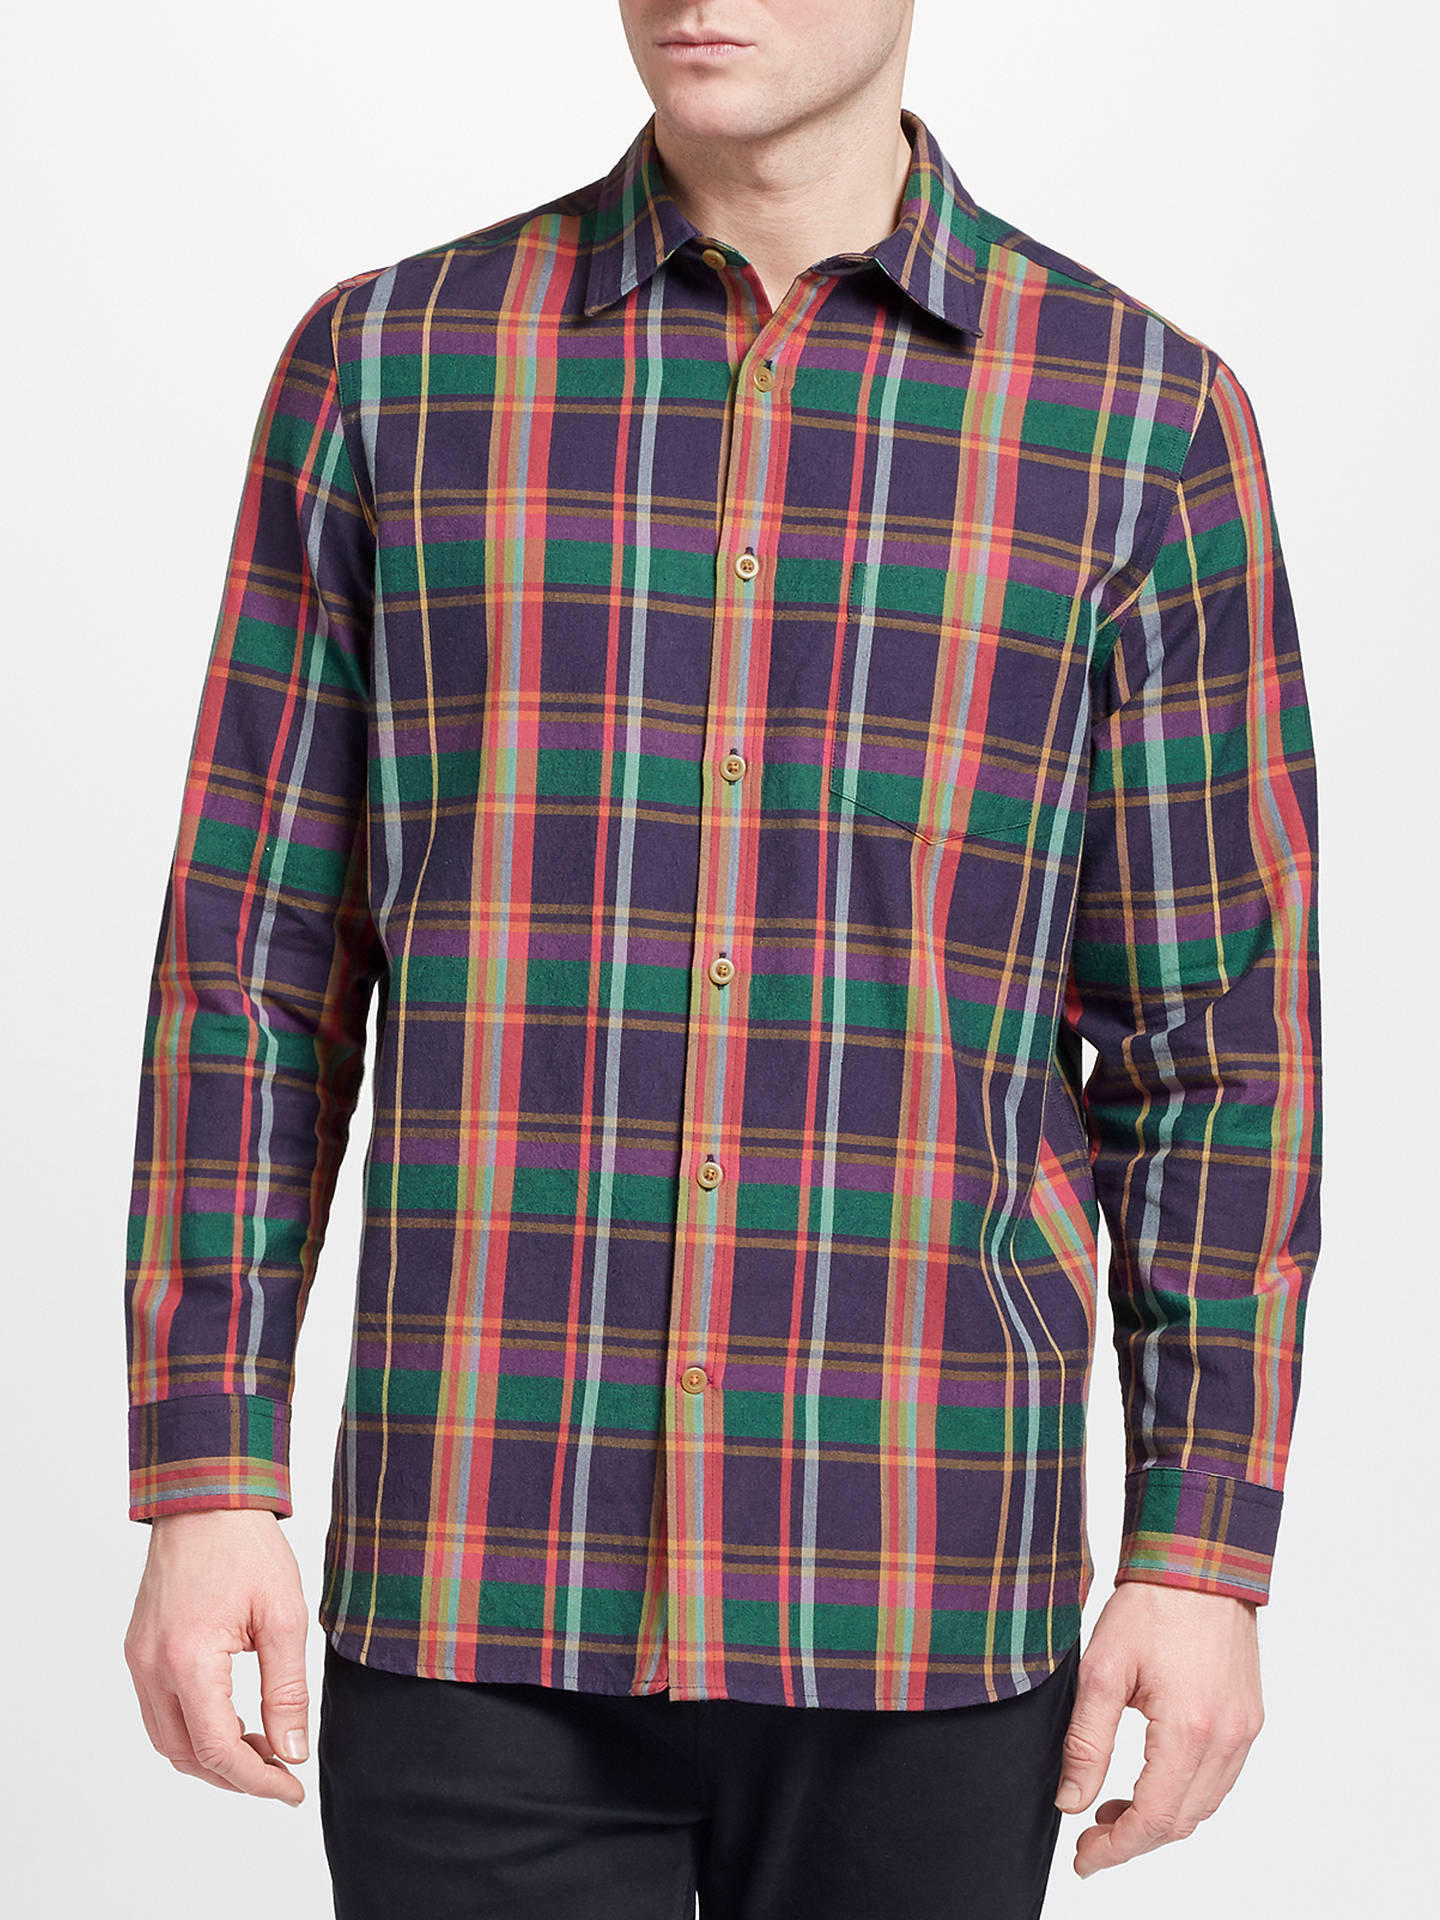 BuyJohn Lewis & Partners Ellery Check Shirt, Green/Pink, S Online at johnlewis.com